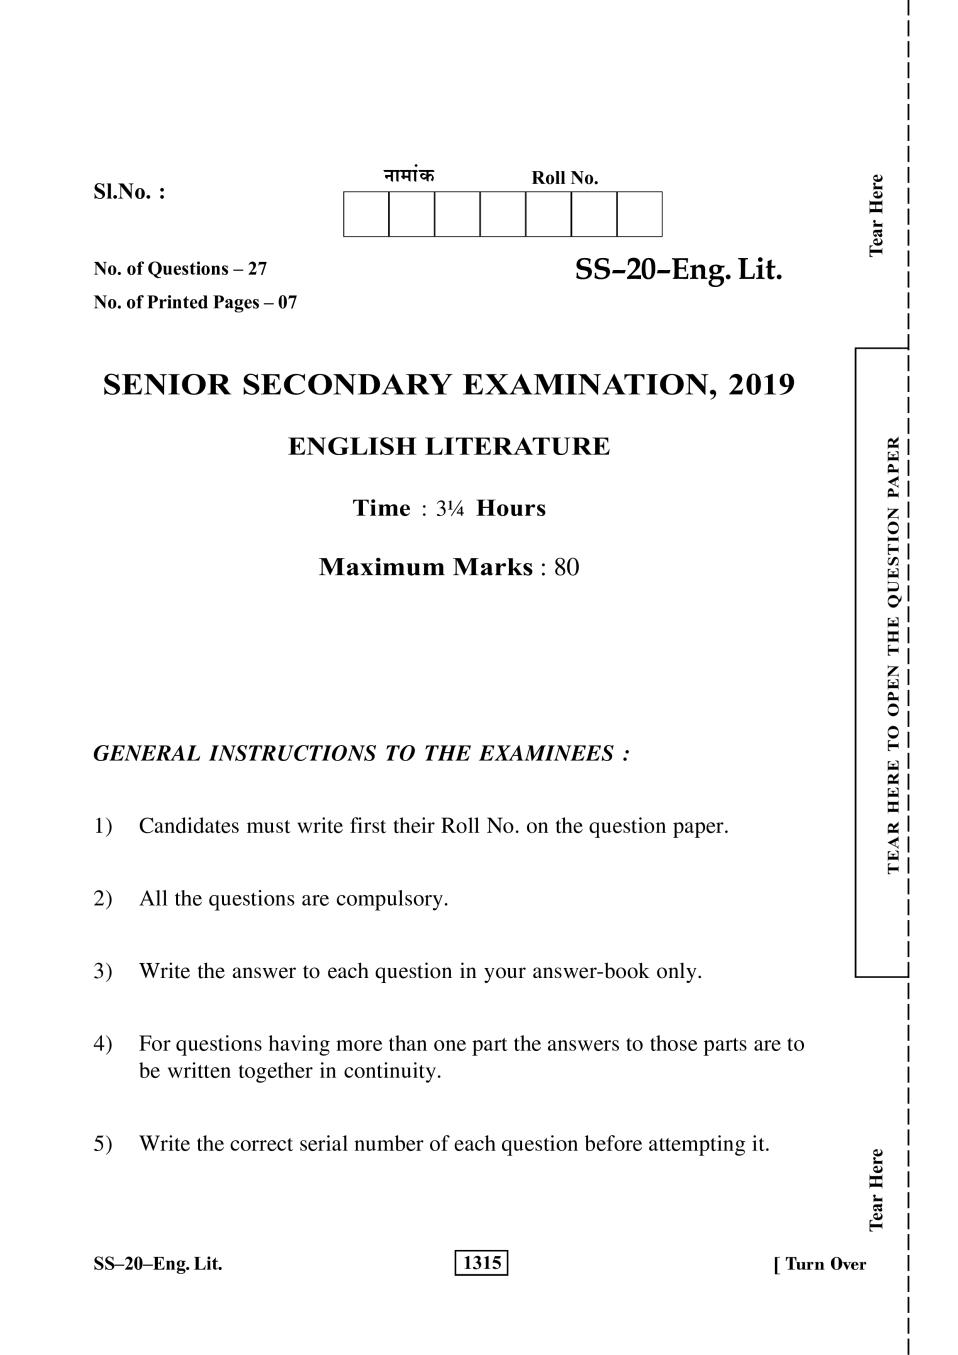 Rajasthan Board Sr. Secondary Eng Lit Question Paper